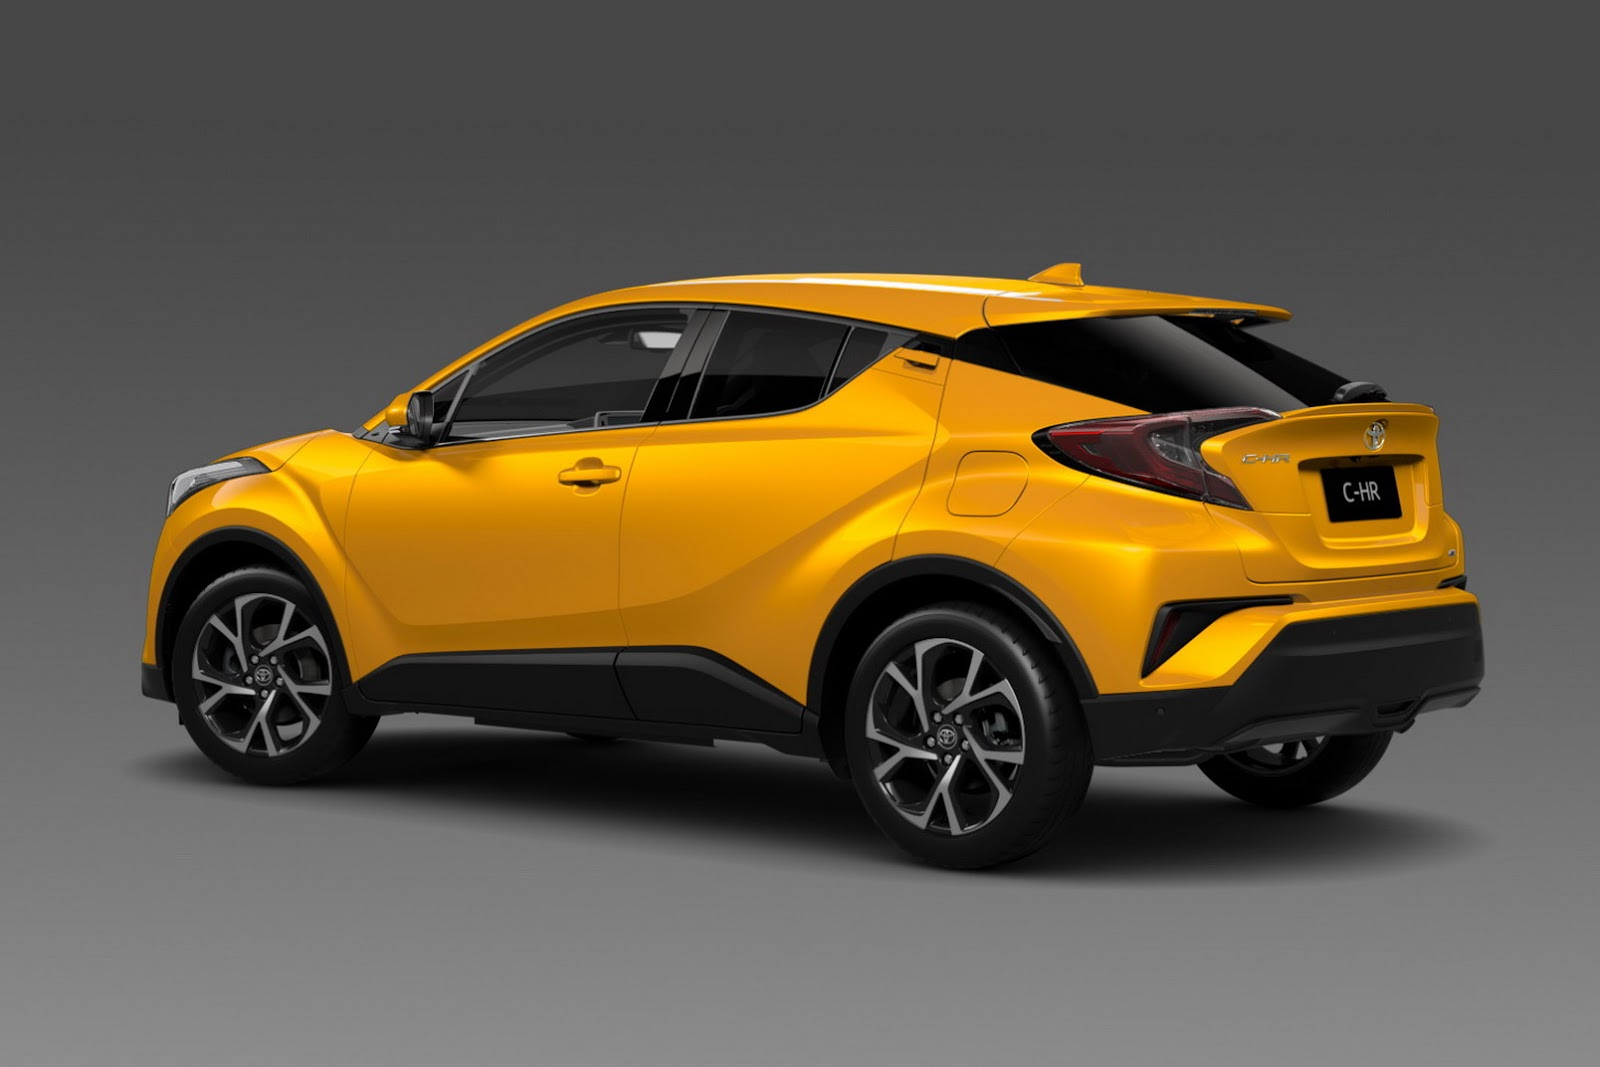 Toyota Ft 1 Concept Price >> Check Out The 2017 Toyota C-HR Small Crossover In Fancier Colors | Carscoops